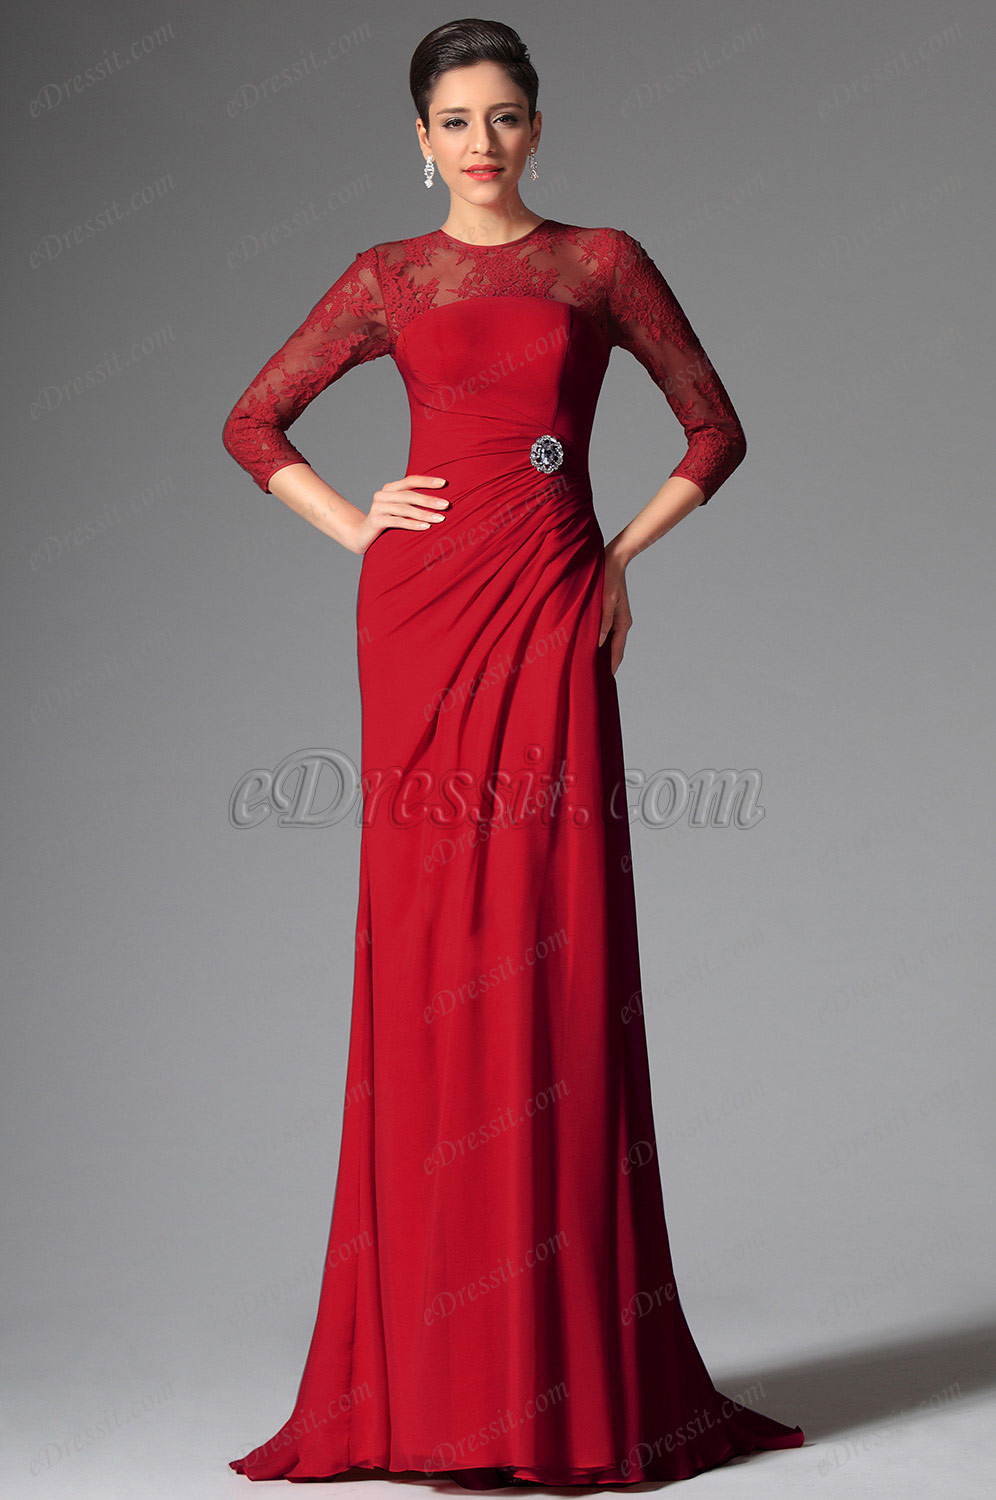 red mother of the bride dress